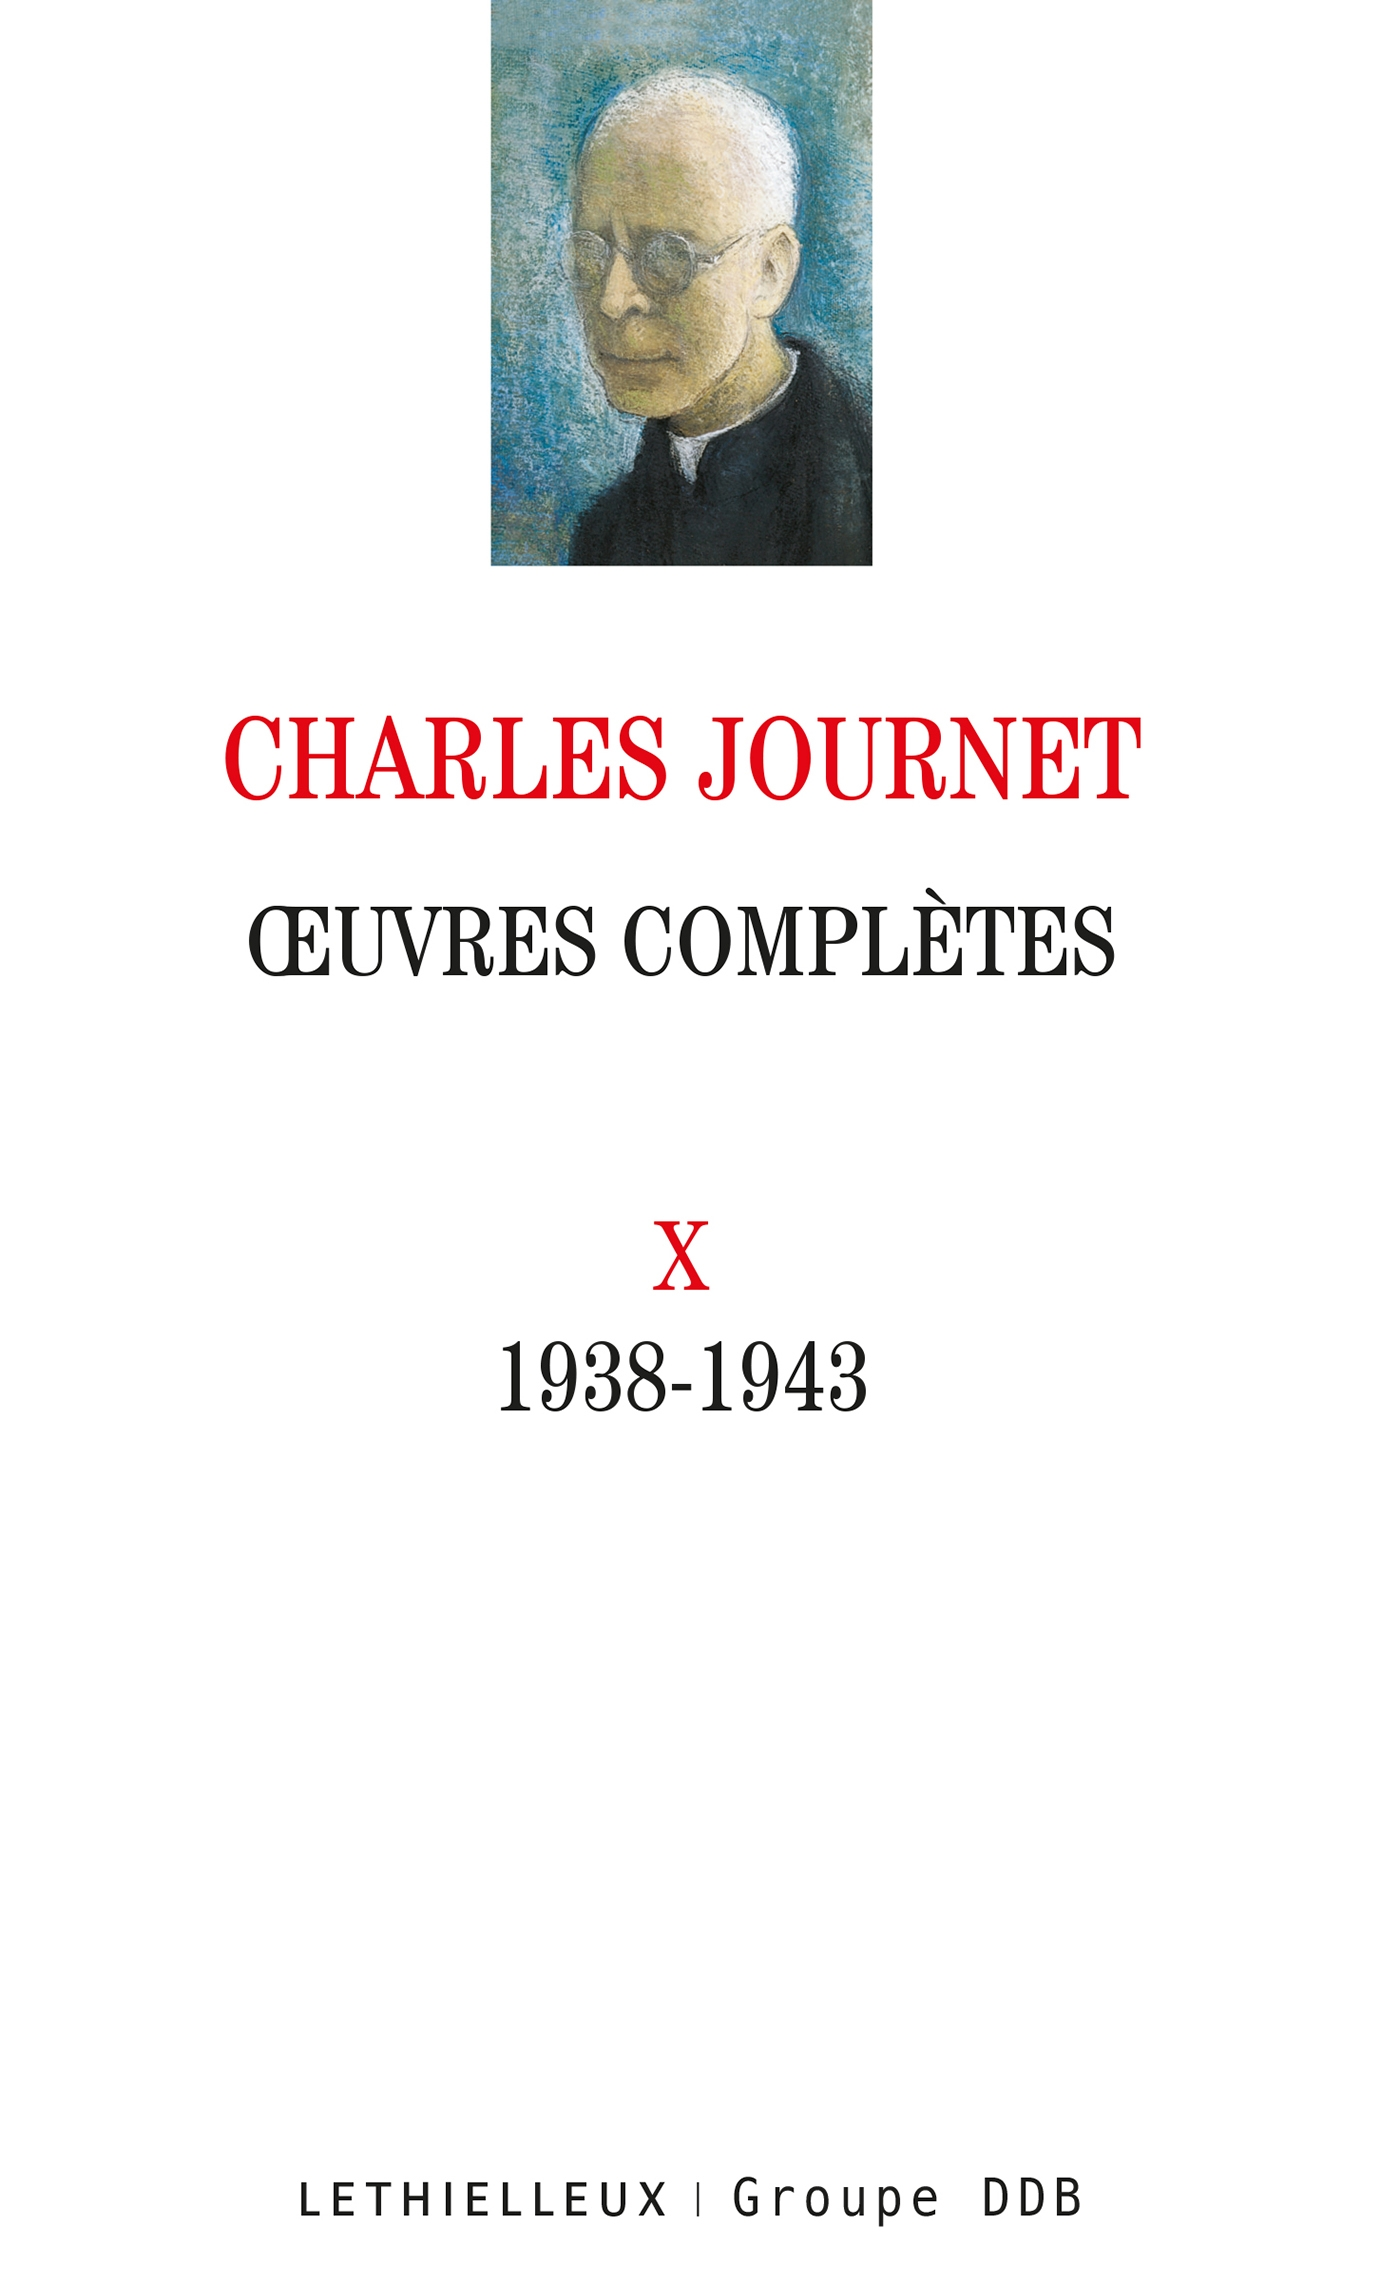 Oeuvres complètes volume X